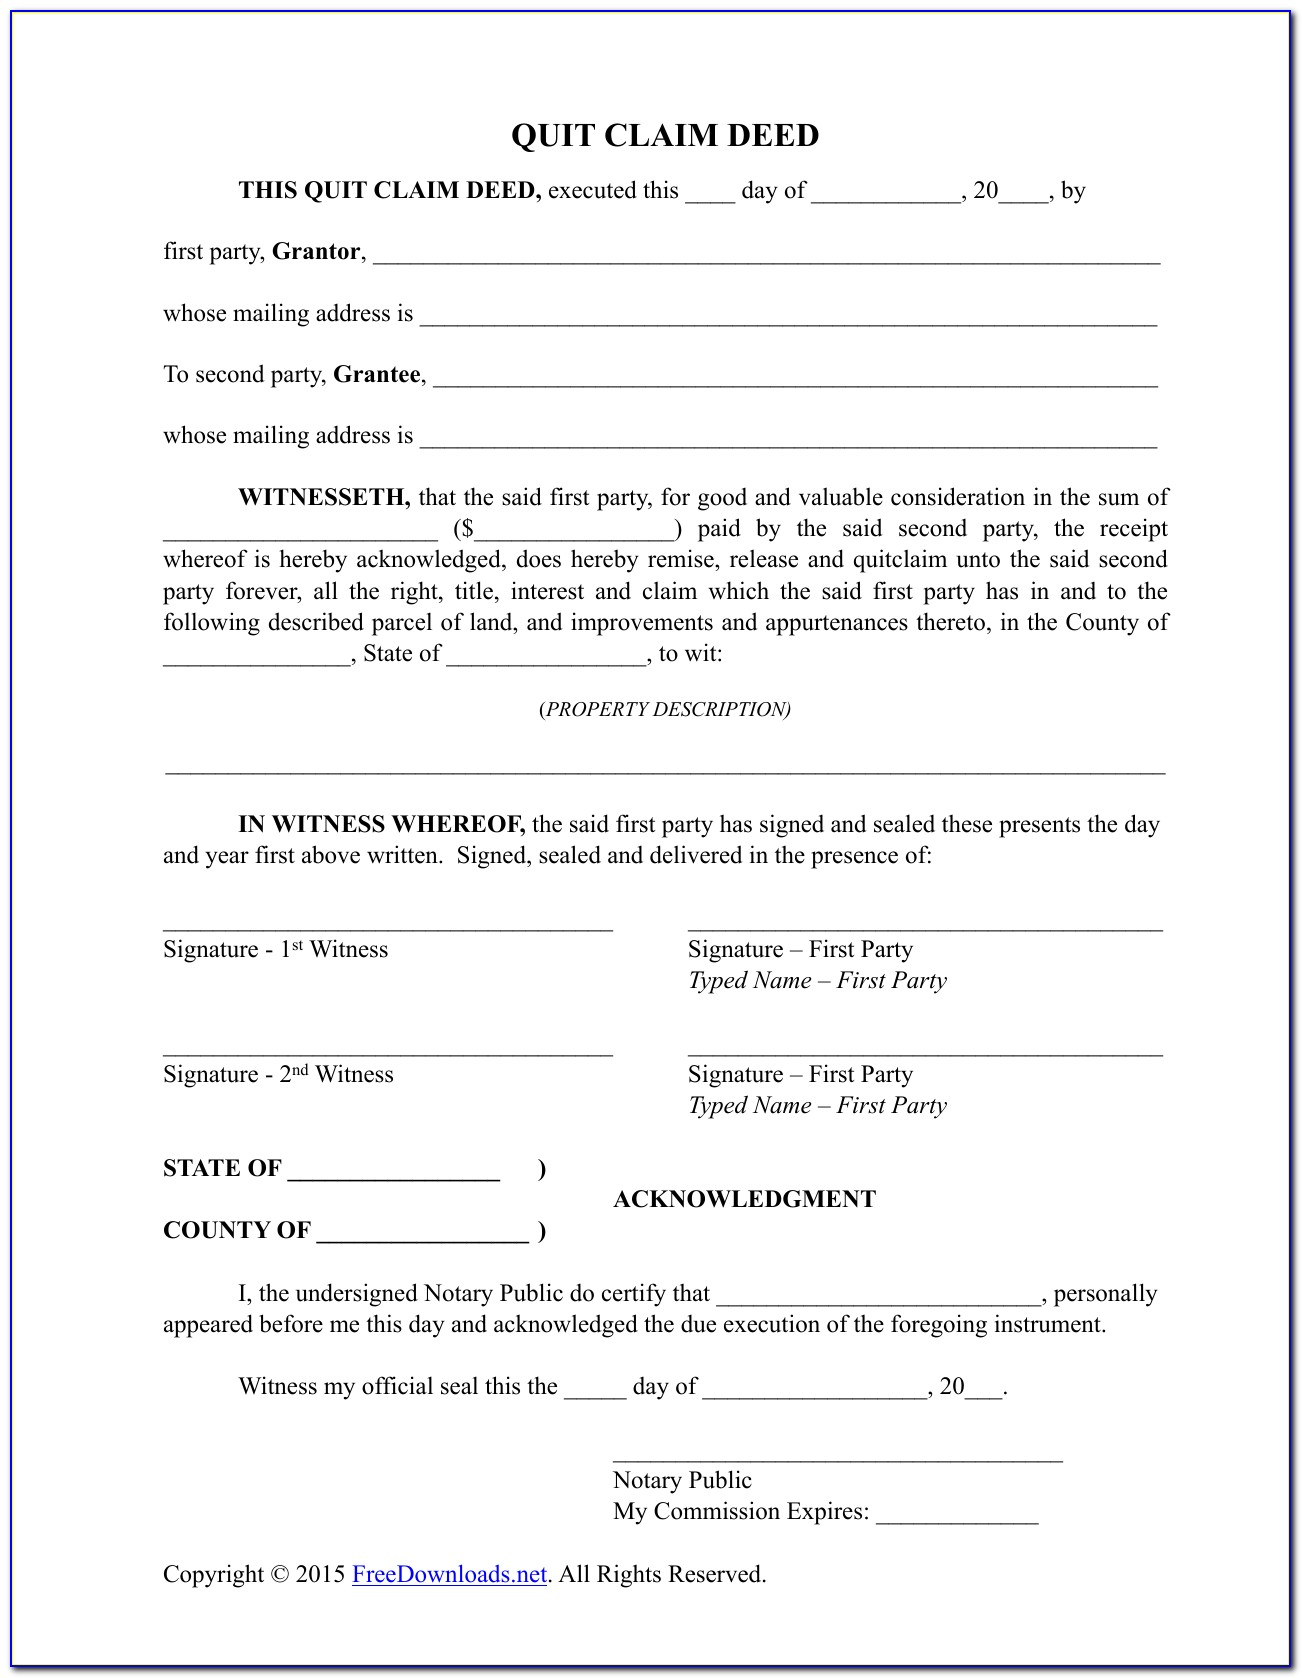 Florida Quit Claim Deed Template Free